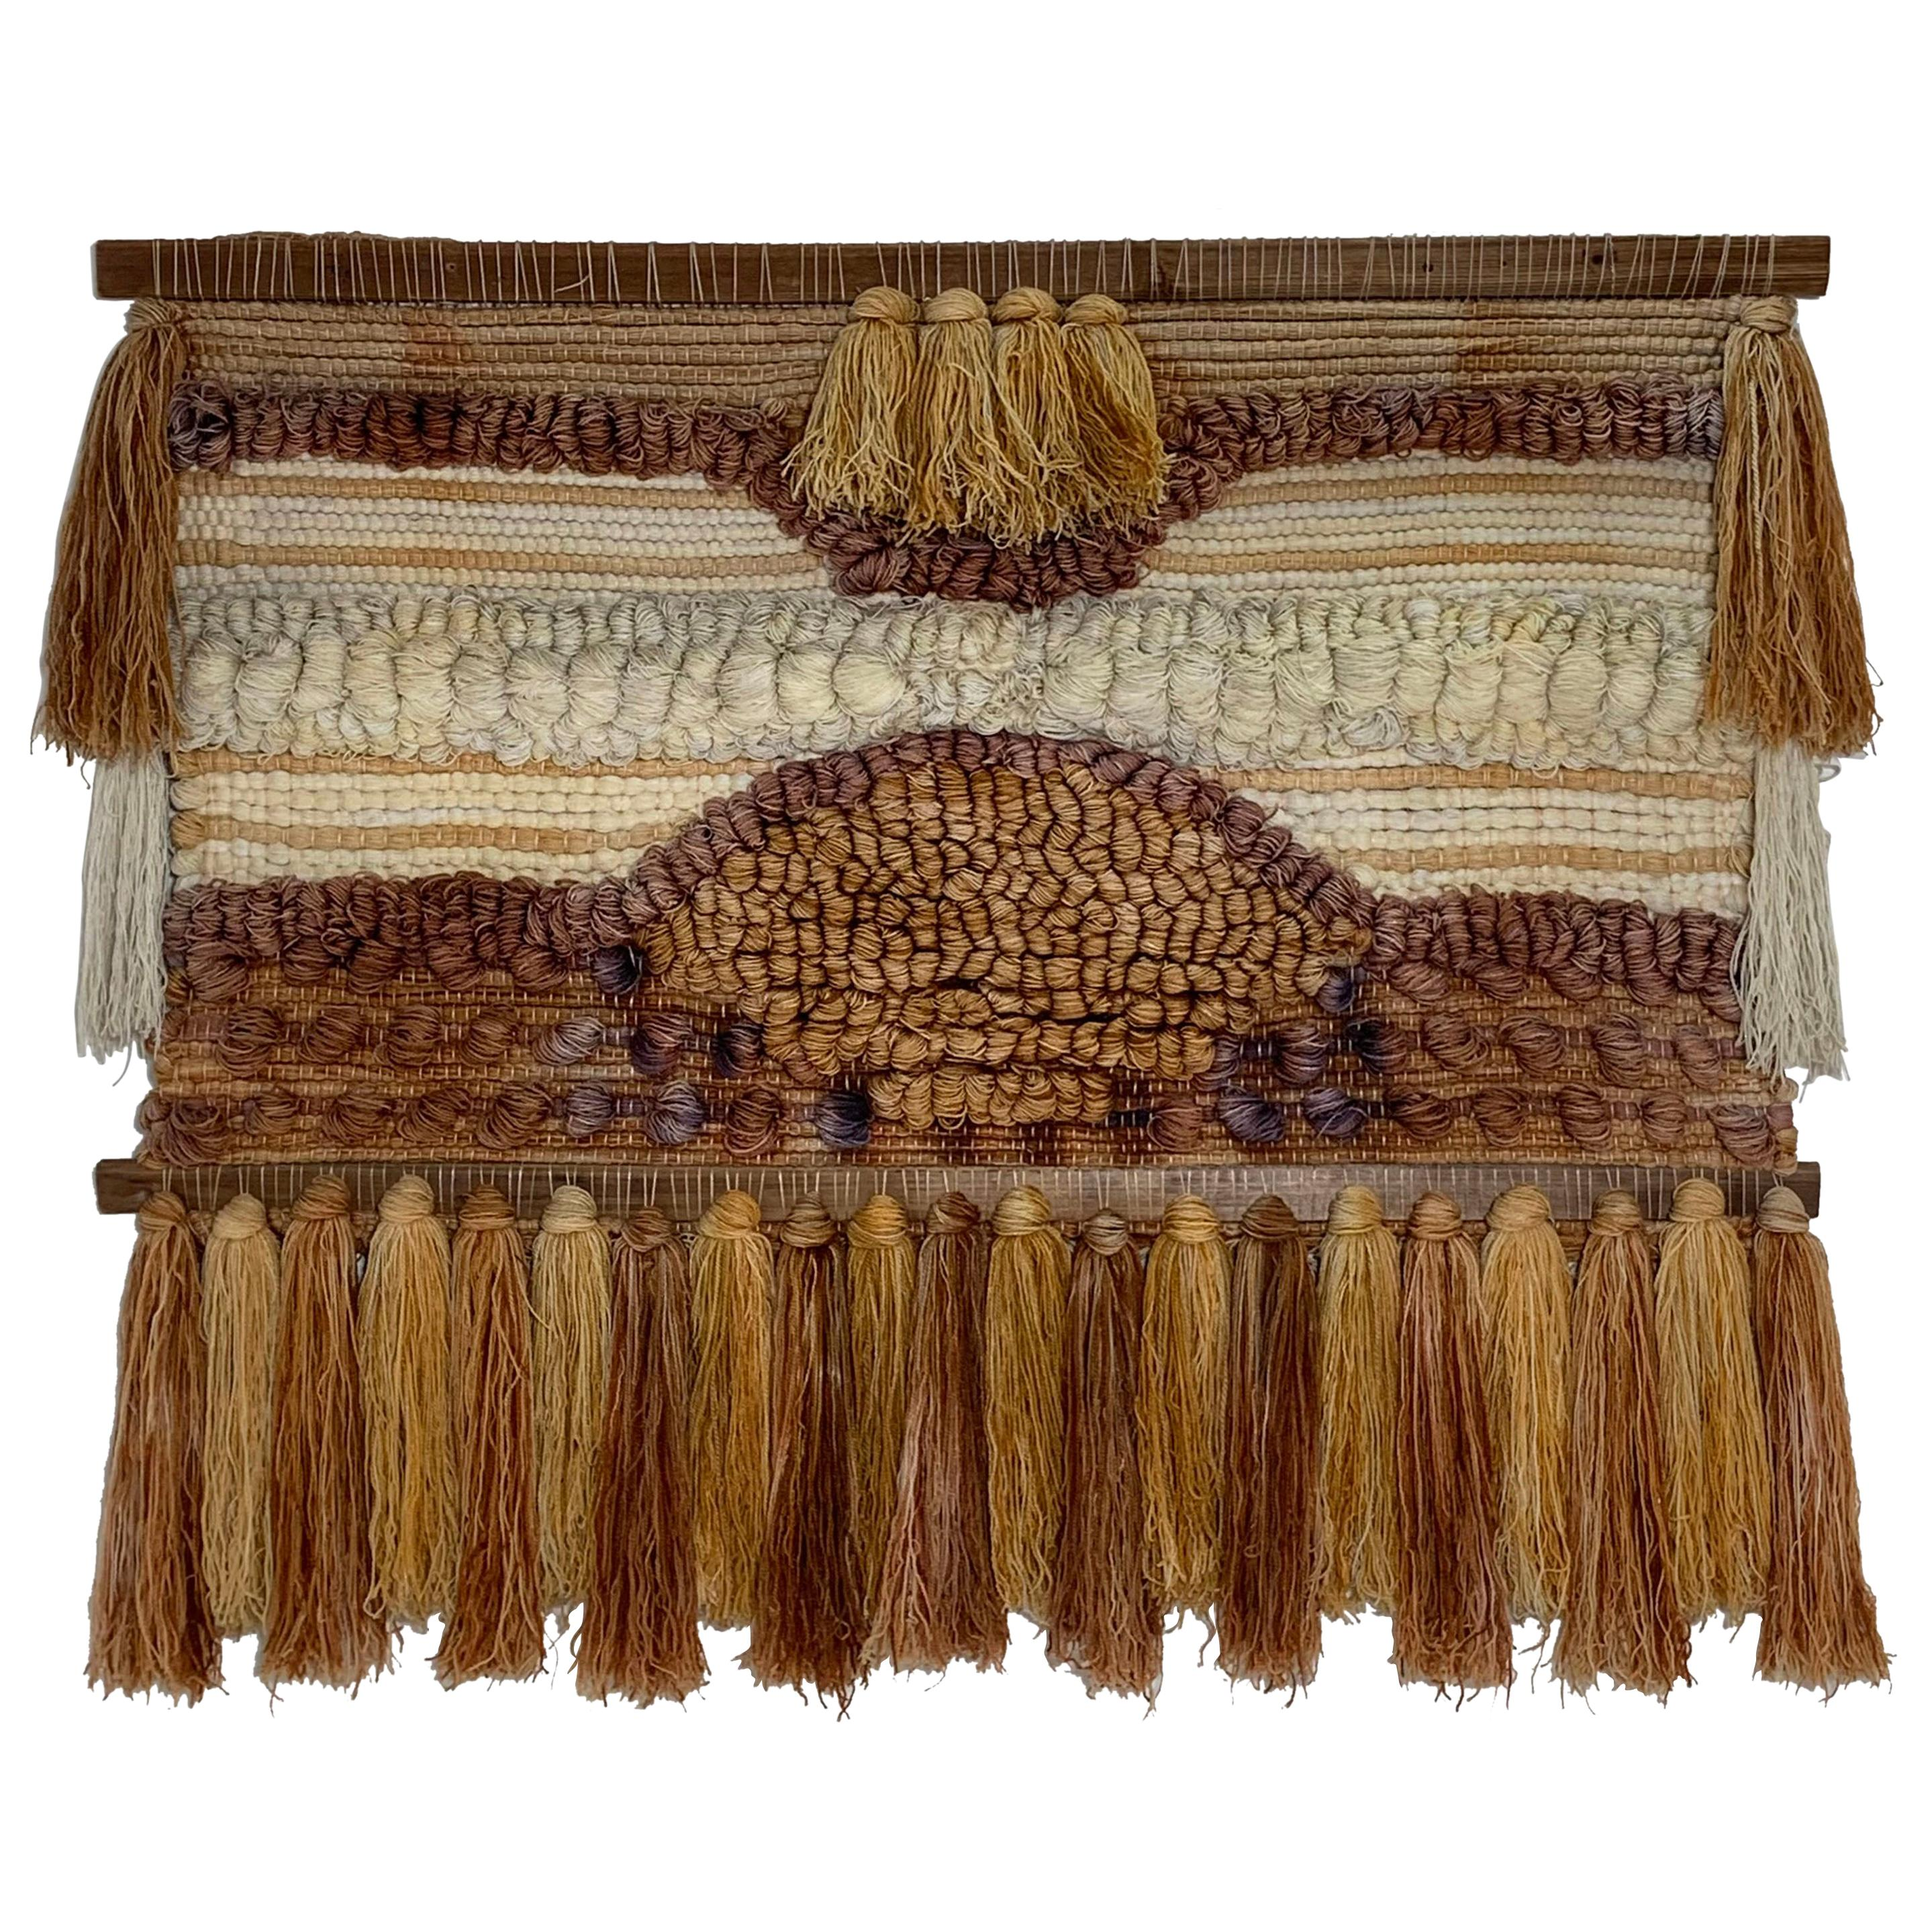 Handcrafted Textile Wall Hanging Weaving, circa 1970s